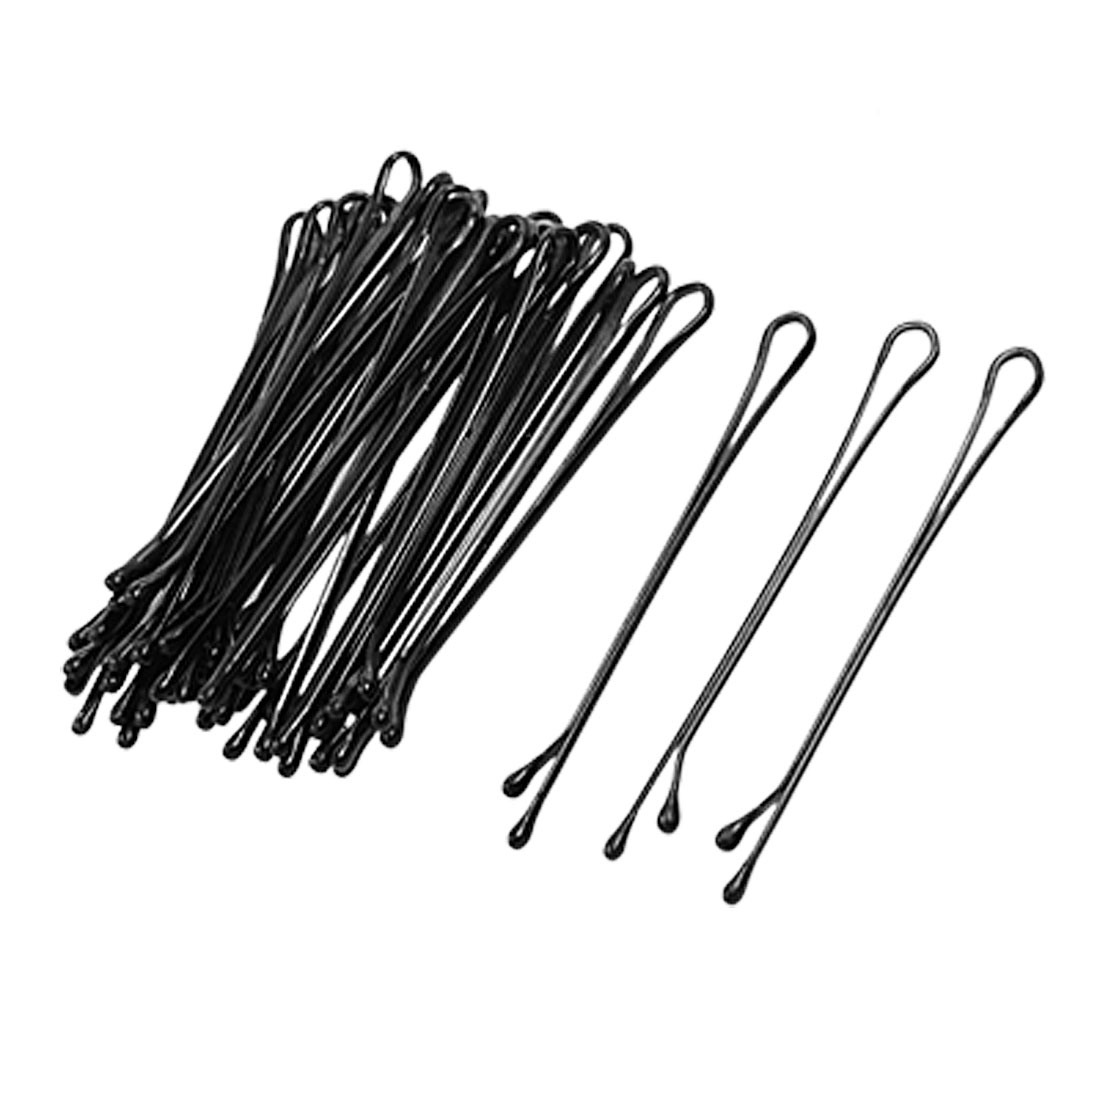 Lady Hair Barrette Bar Clips DIY Hairstyle Bobby Pin Black 32 Pcs